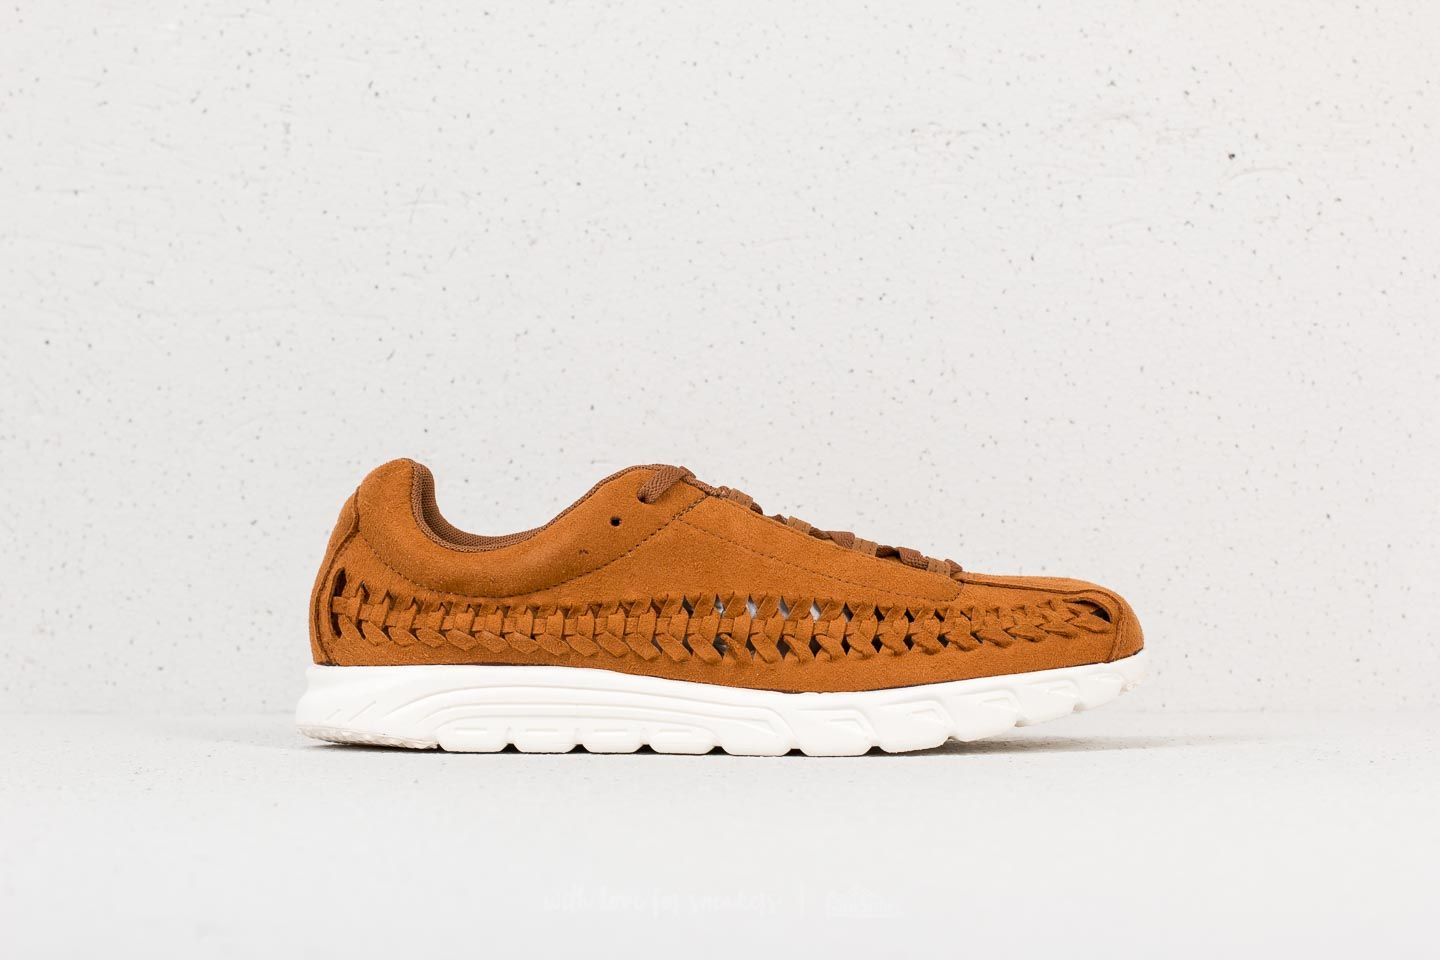 Nike Mayfly Woven Ale Brown  Sail at a great price 74 € bestell bei Footshop a2e1d13bd8